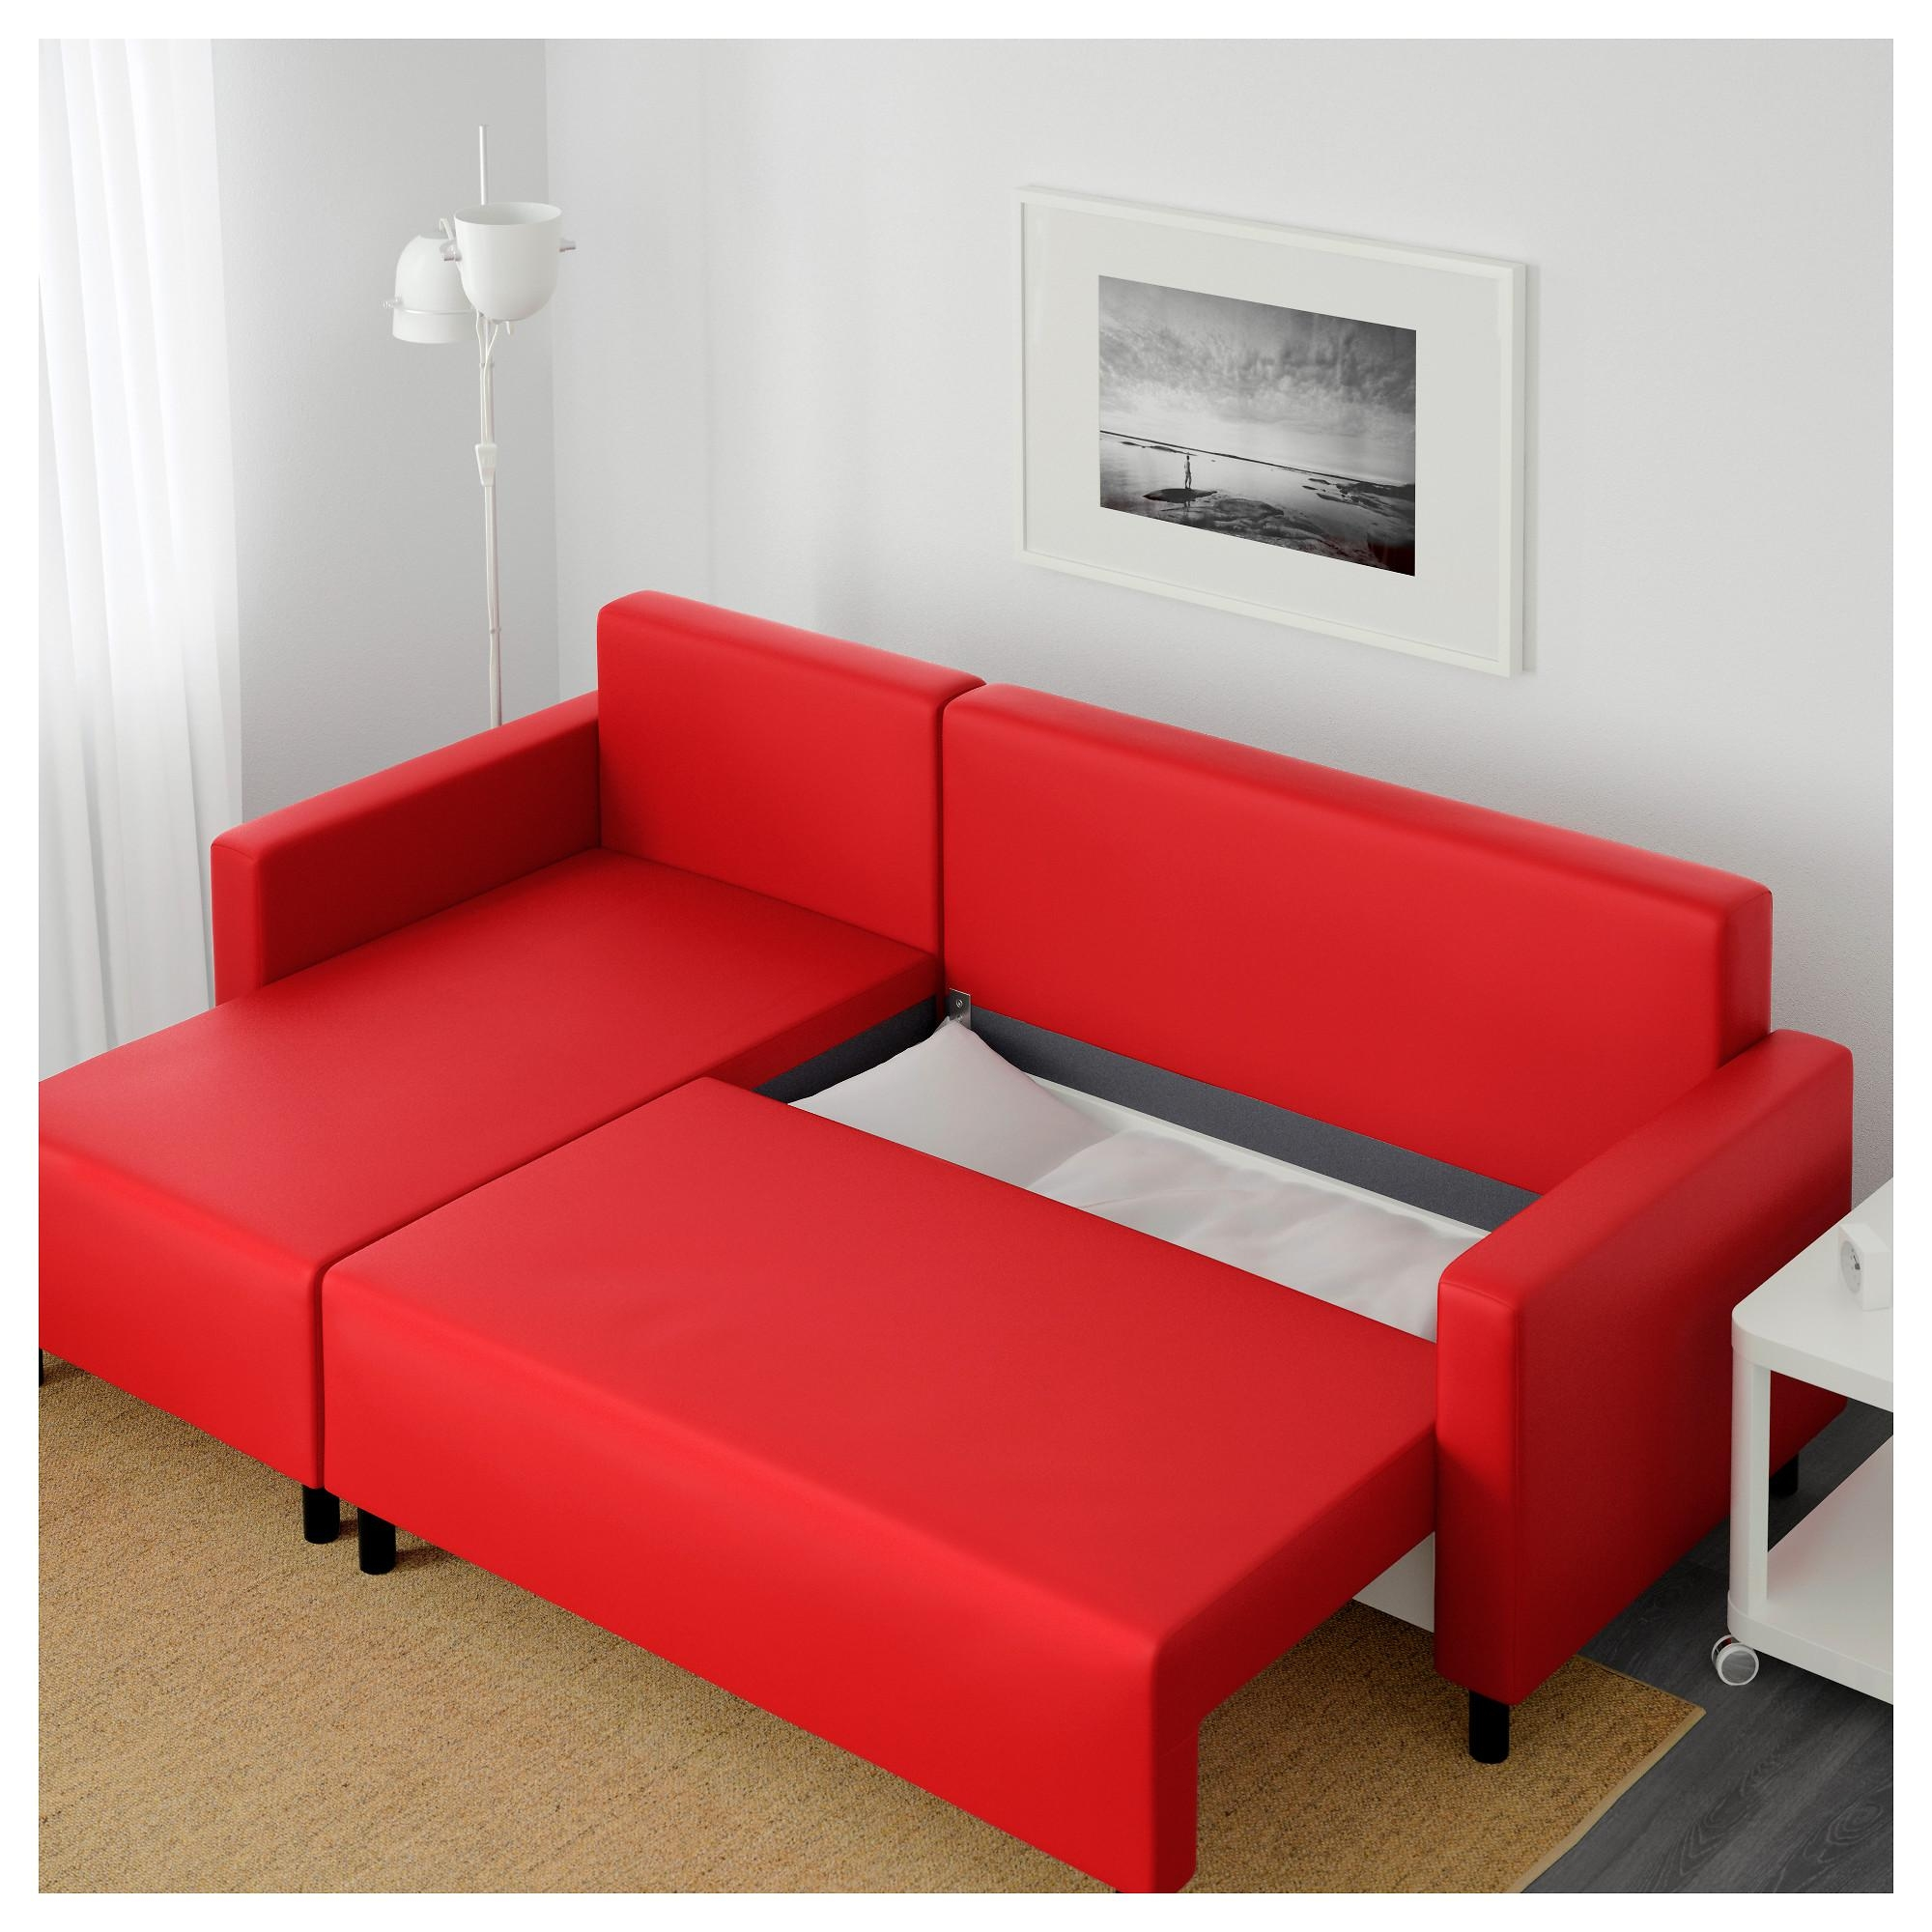 Furniture: Balkarp Sofa Bed | Sleeper Chair Ikea | Full Size Inside Red Sofa Beds Ikea (Image 10 of 20)